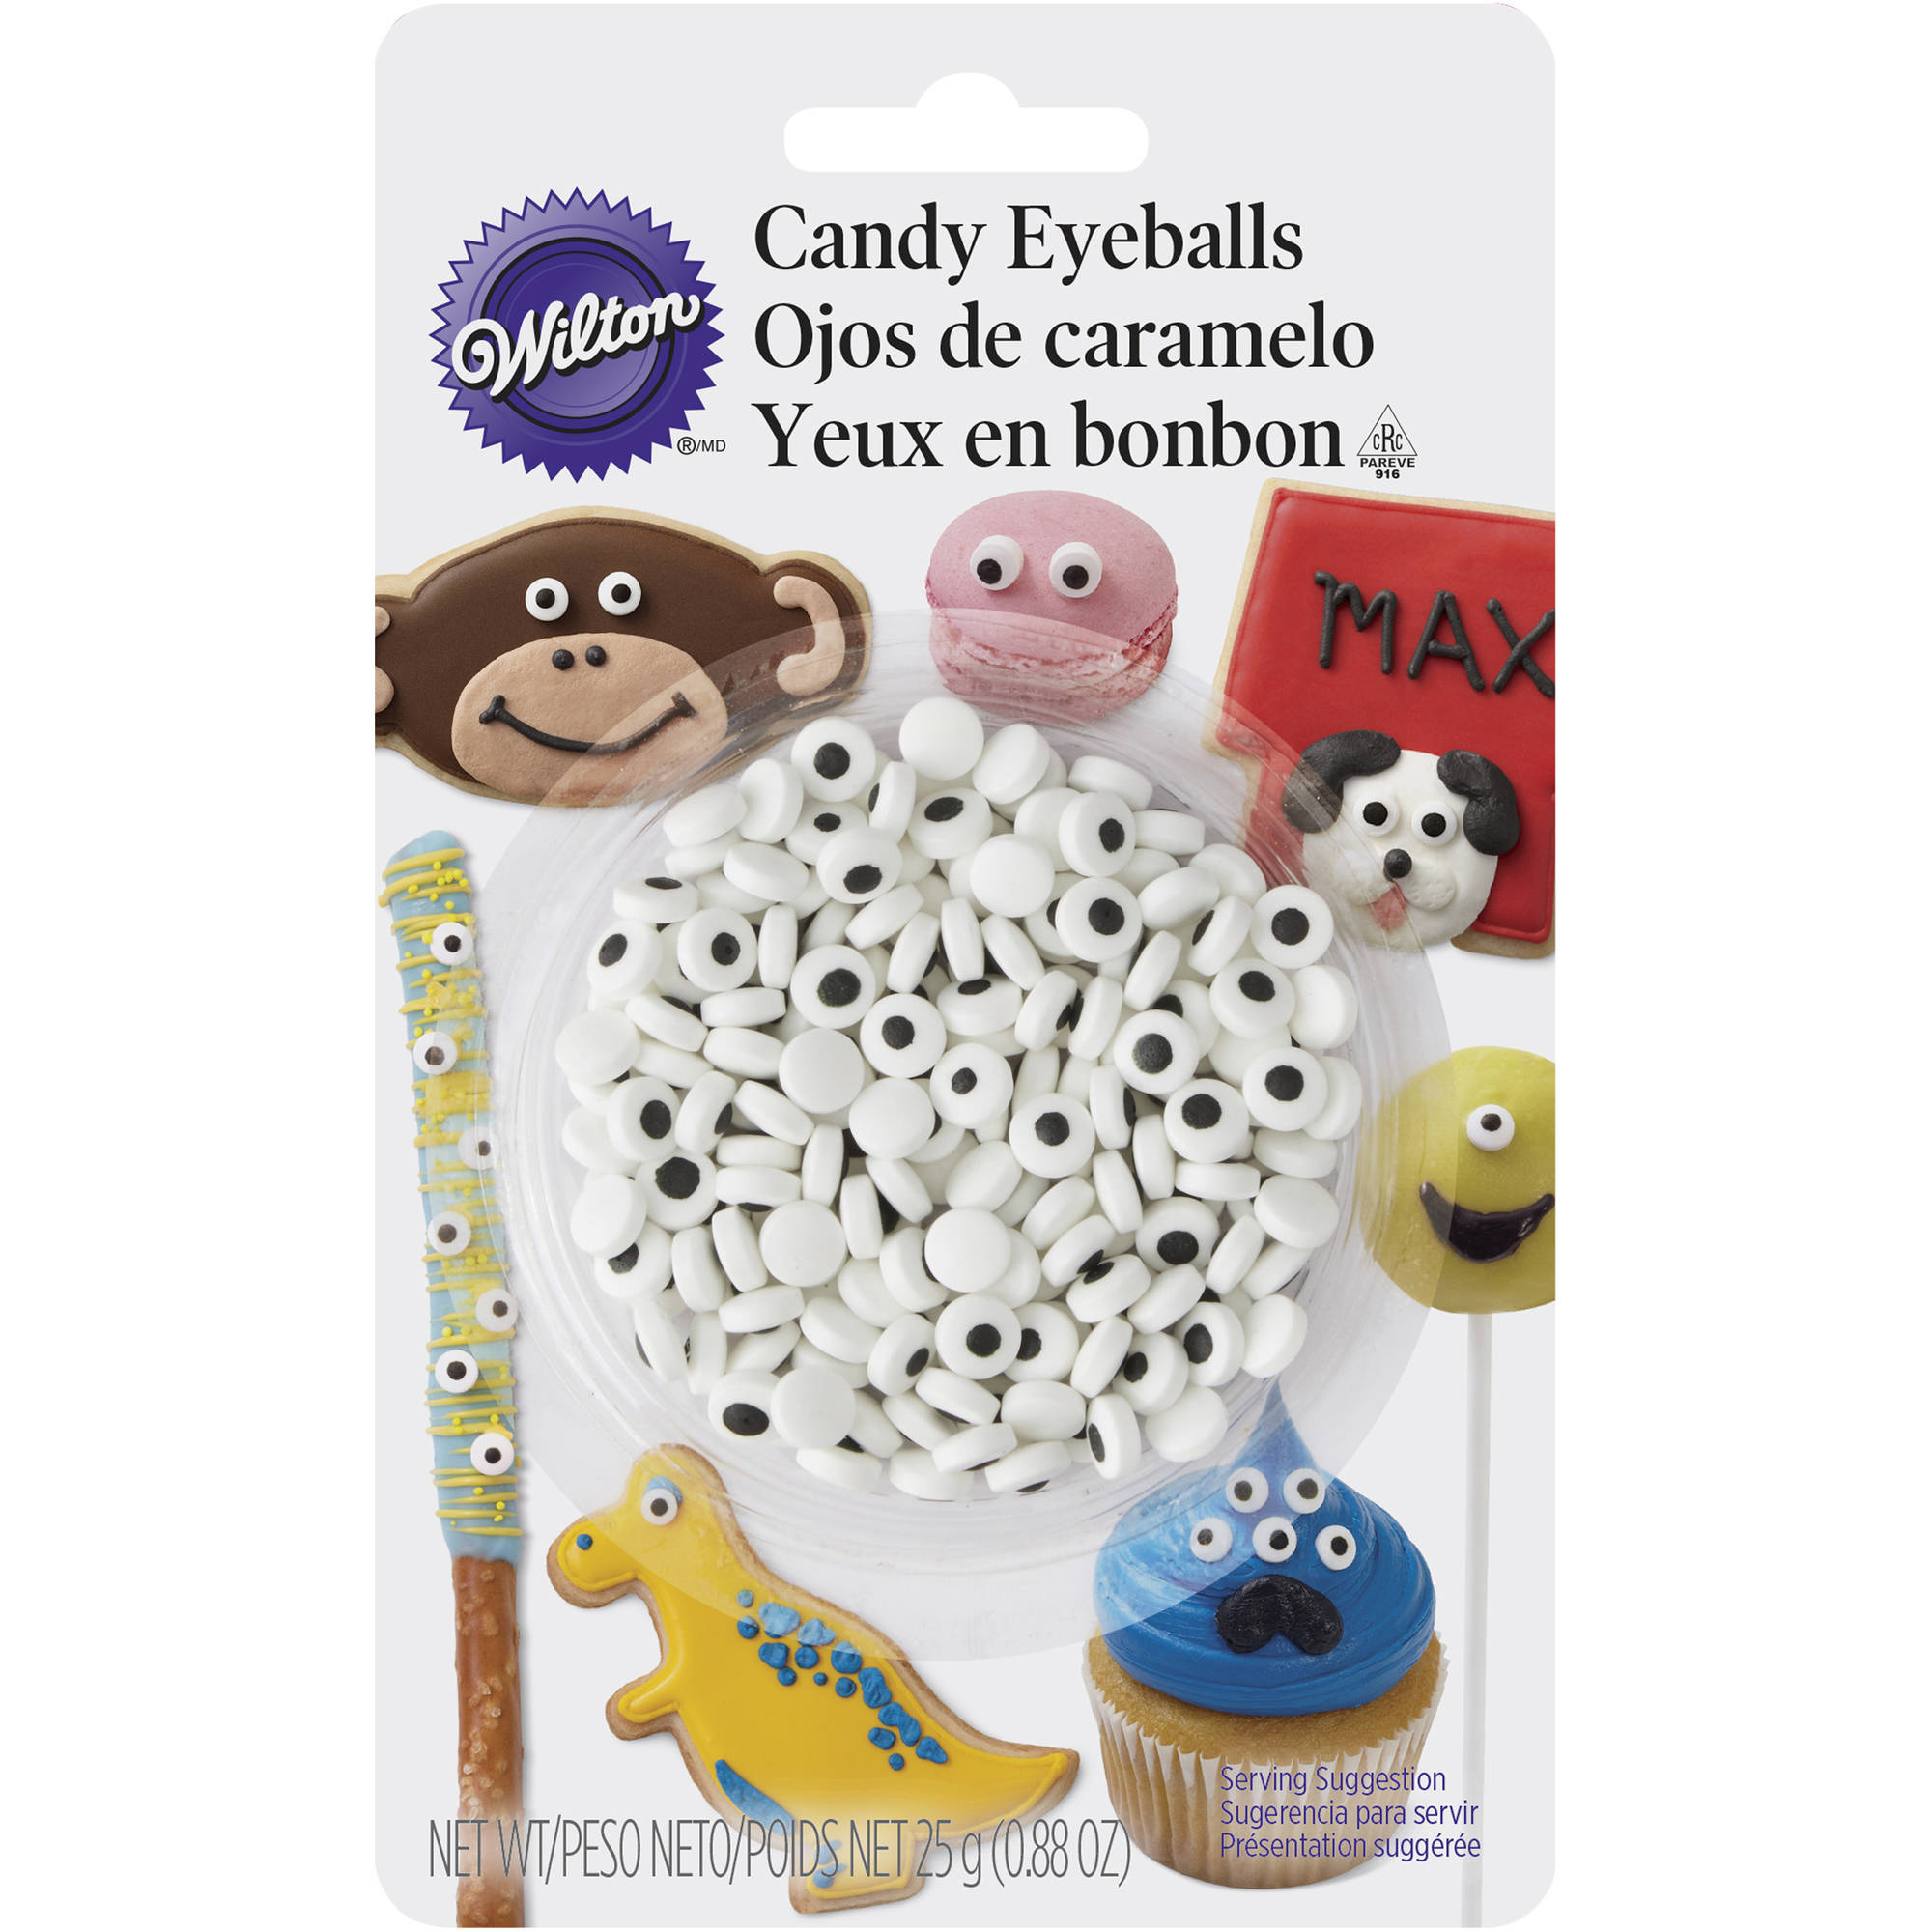 Wilton Mini Candy Eyeballs, 710-7236